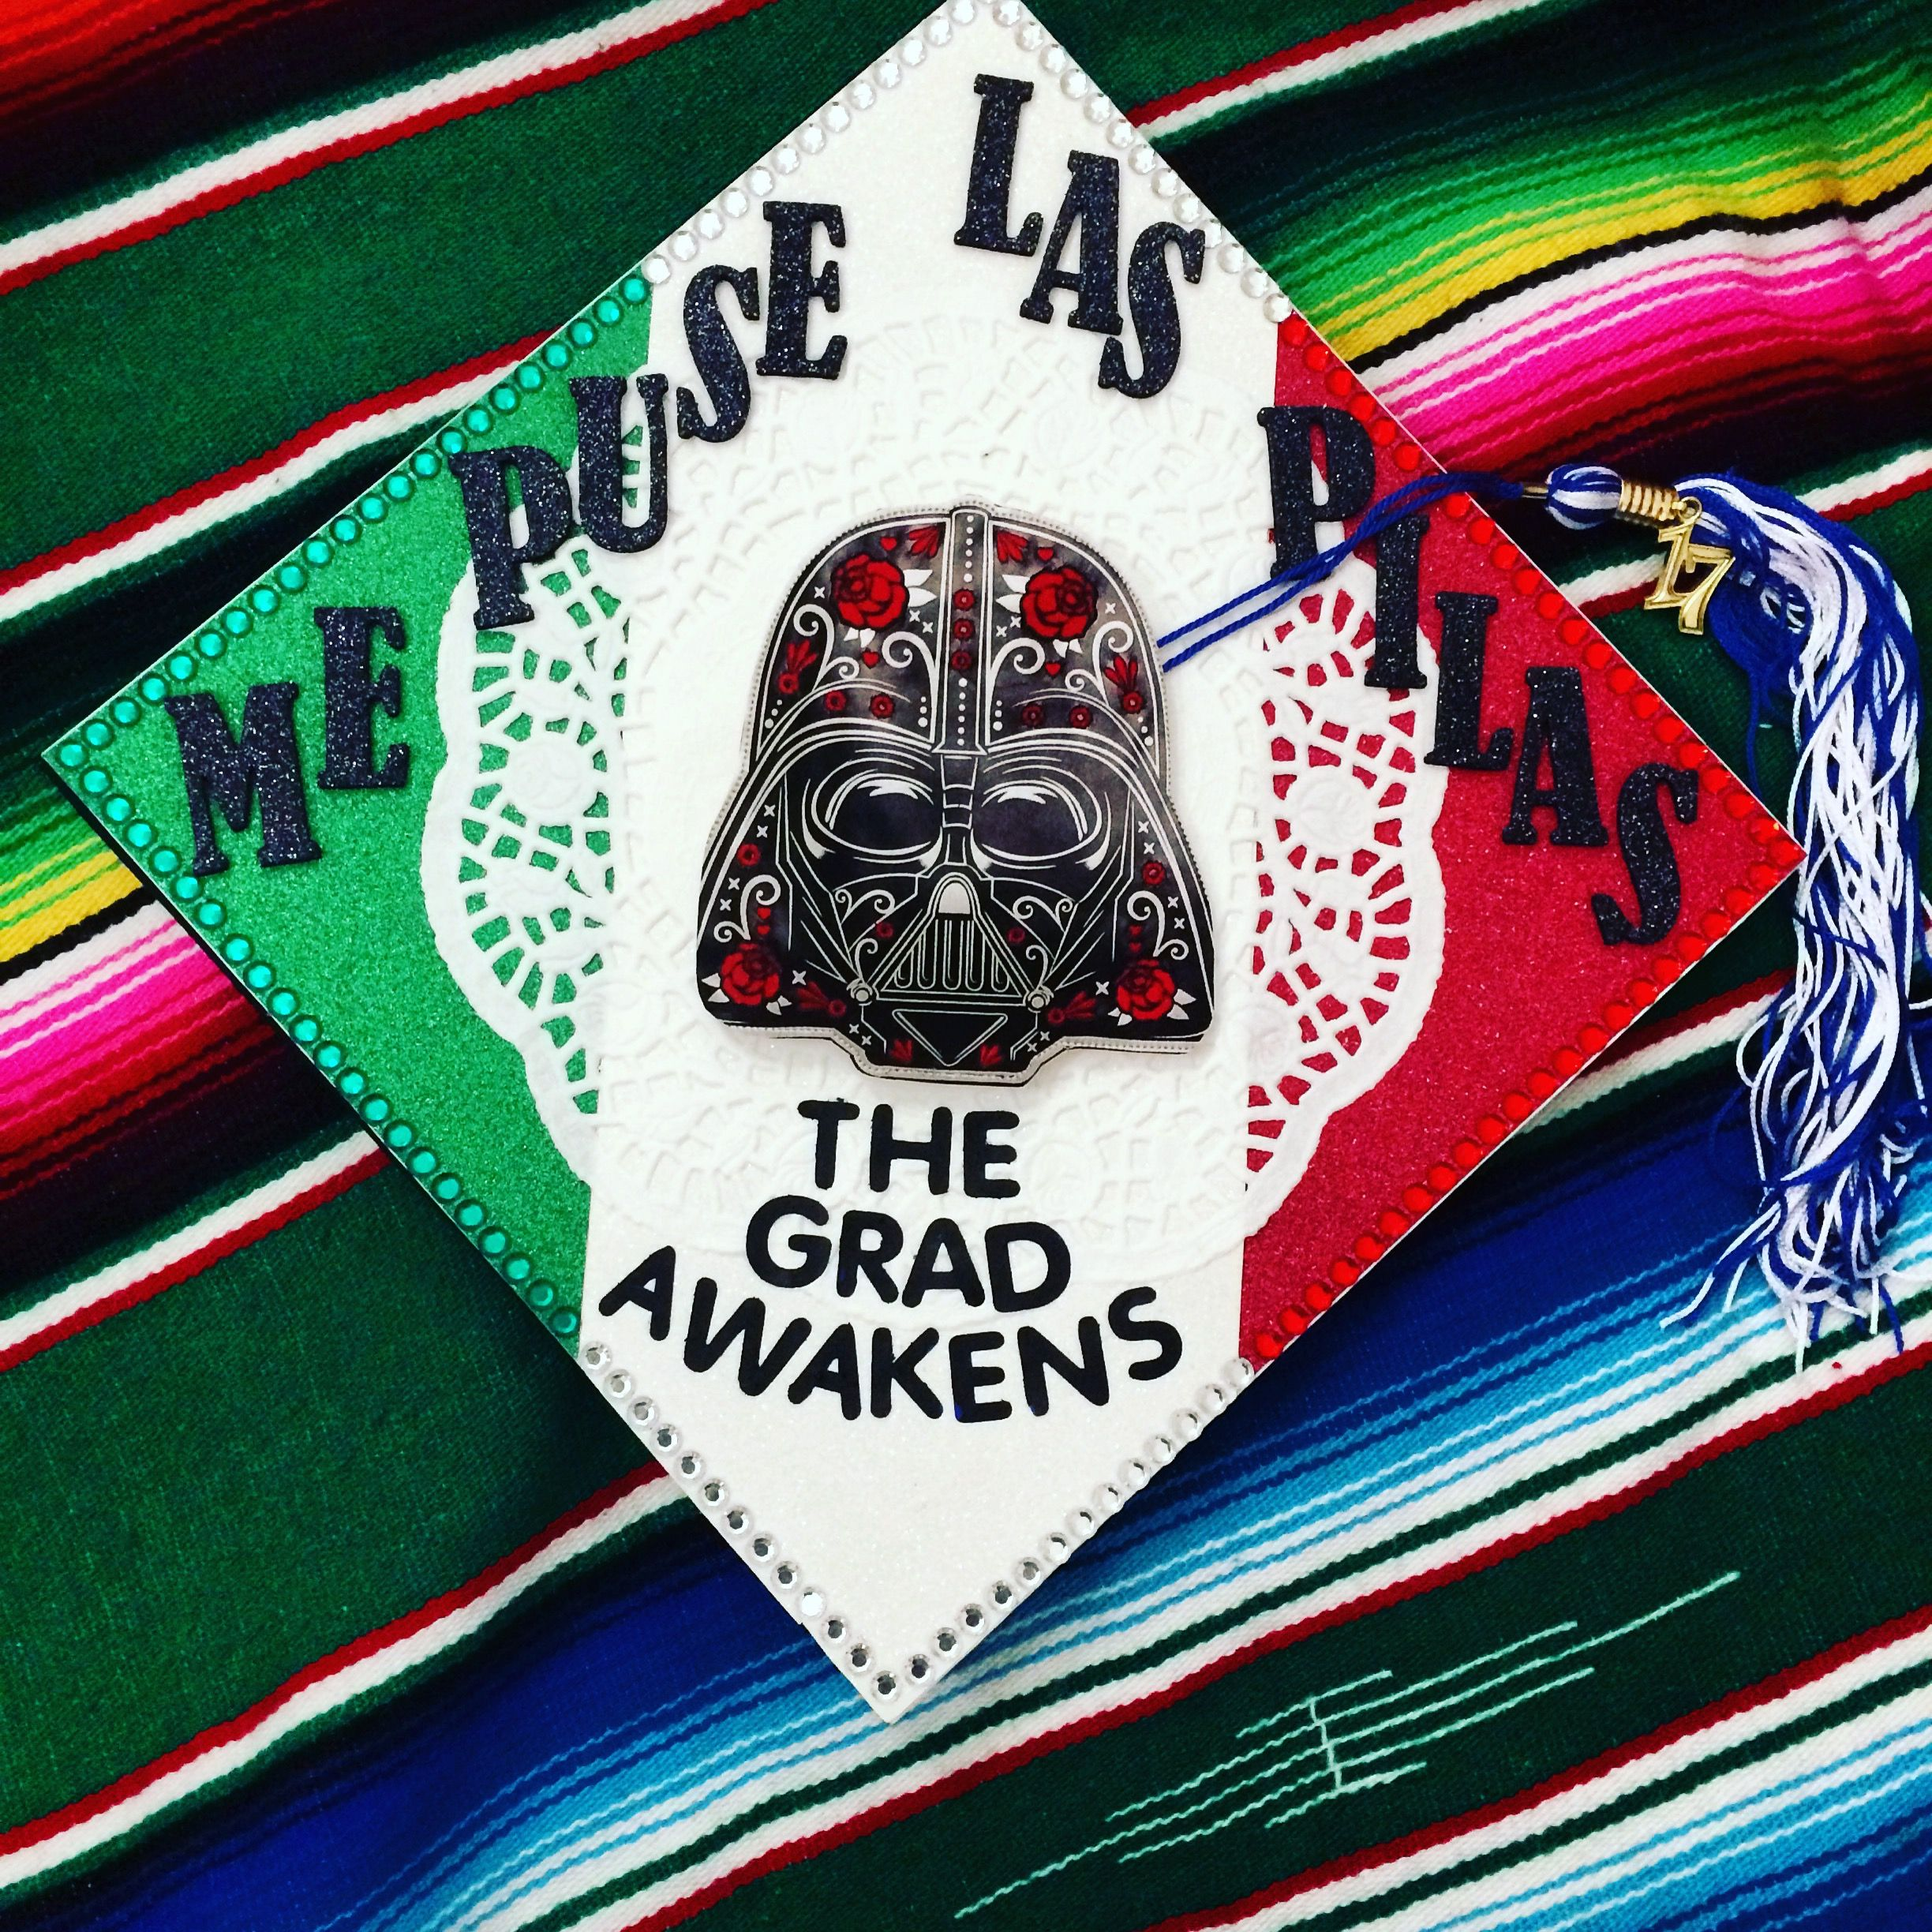 The grad awakens! Star wars play on words, Mexico flag background ...